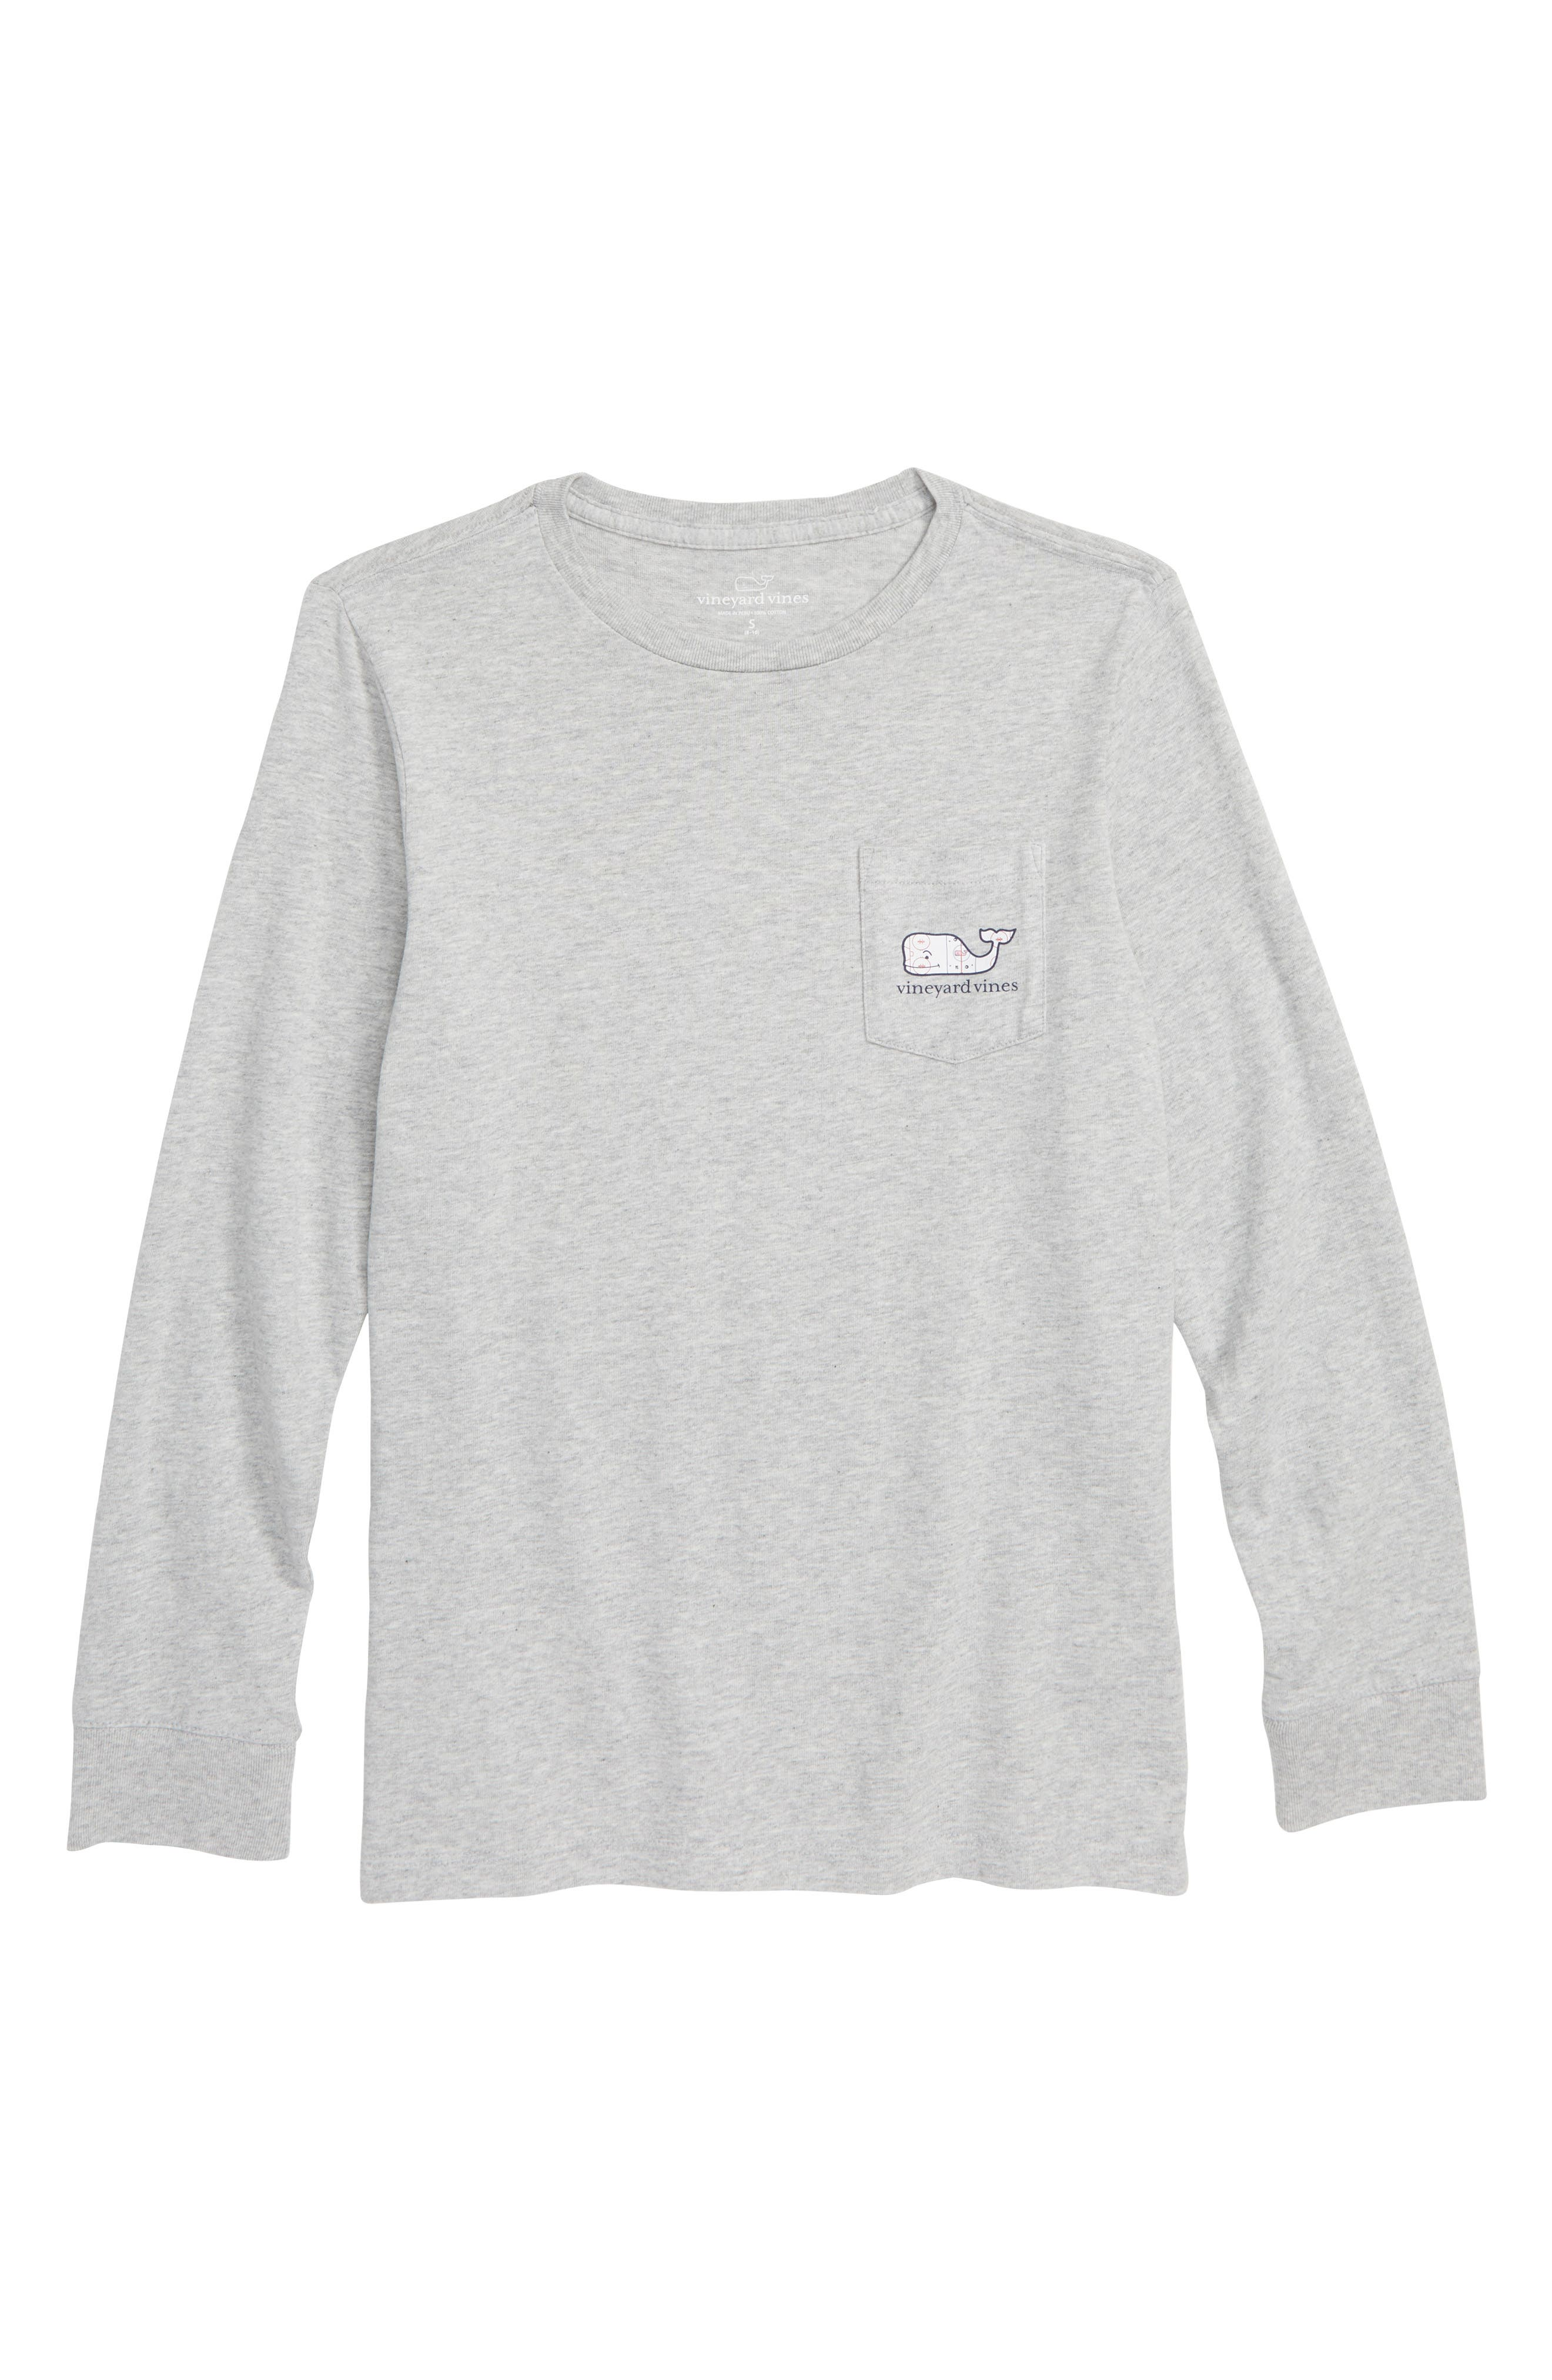 VINEYARD VINES,                             Hockey Rink Whale Long Sleeve T-Shirt,                             Main thumbnail 1, color,                             039